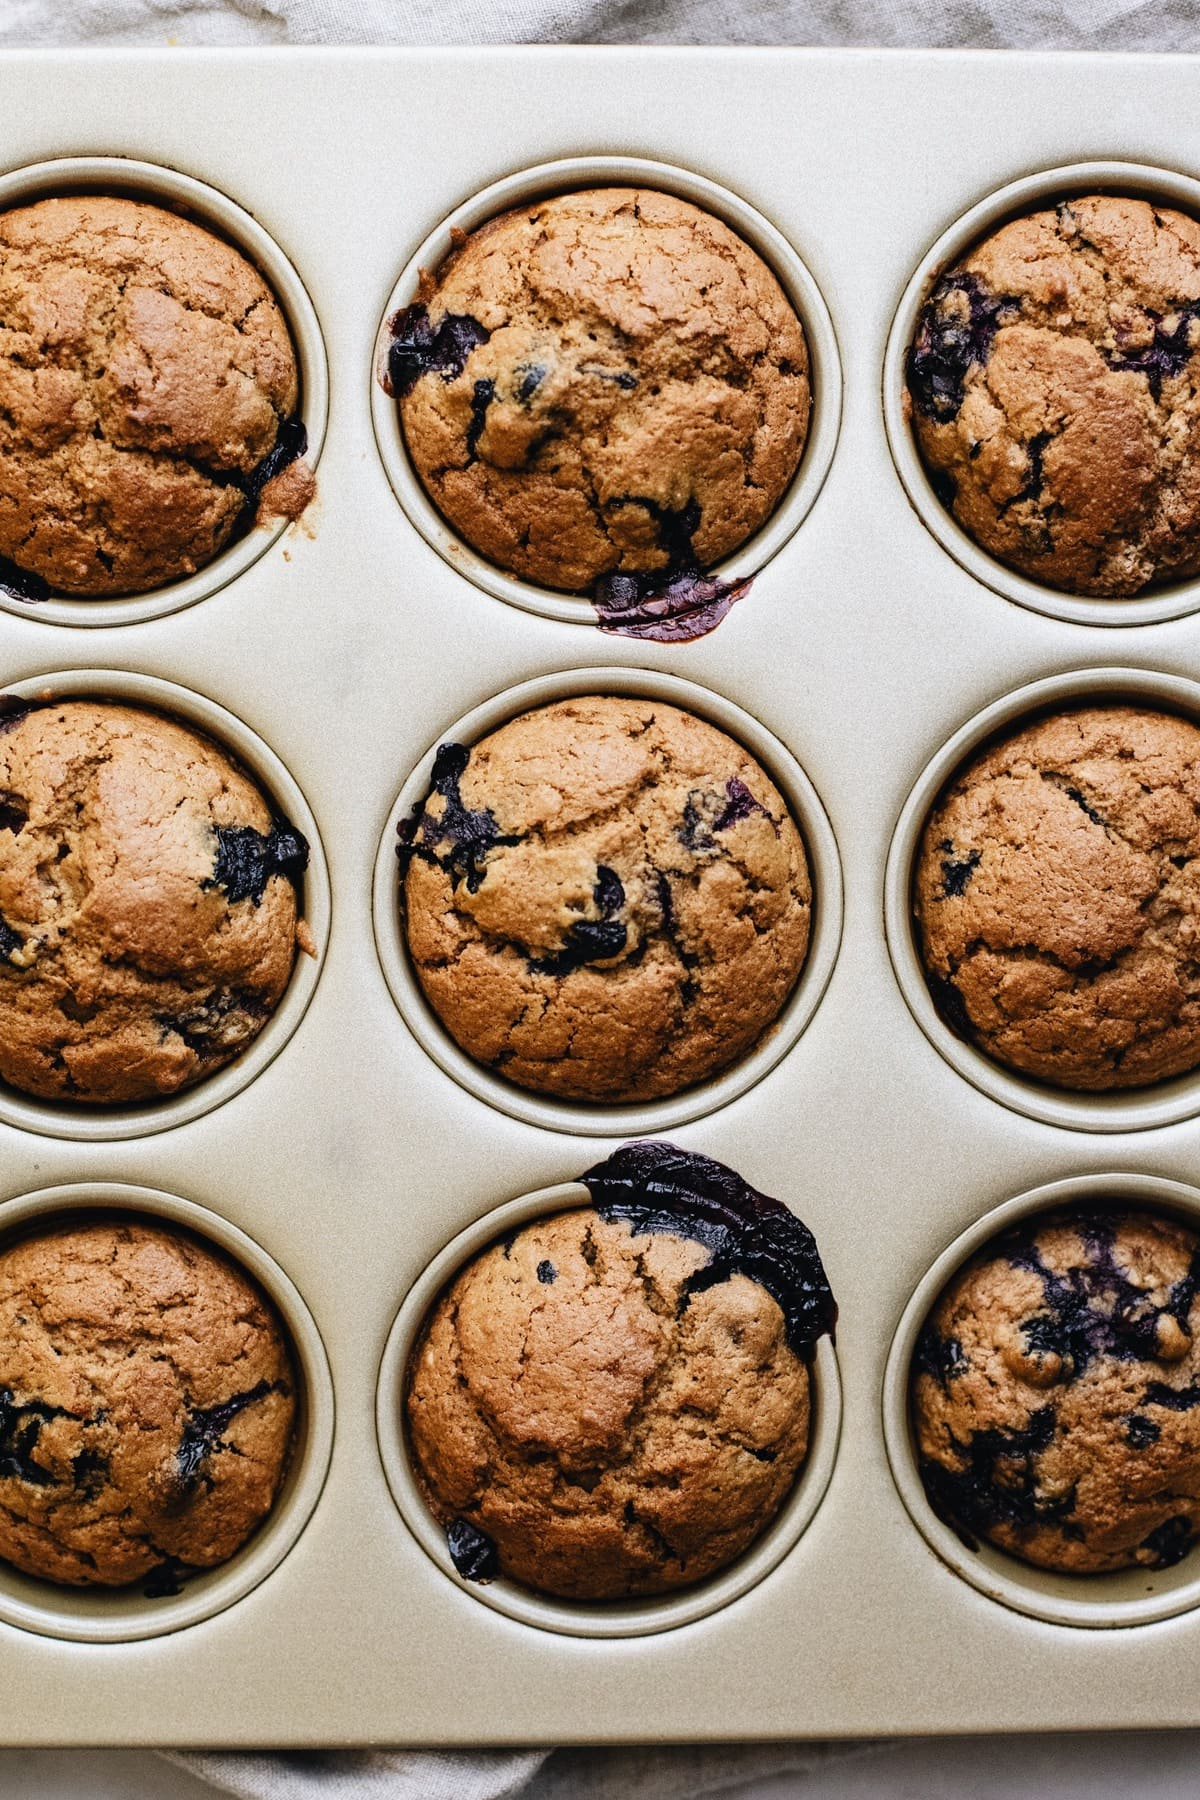 baked blueberry muffins in a muffin tin.